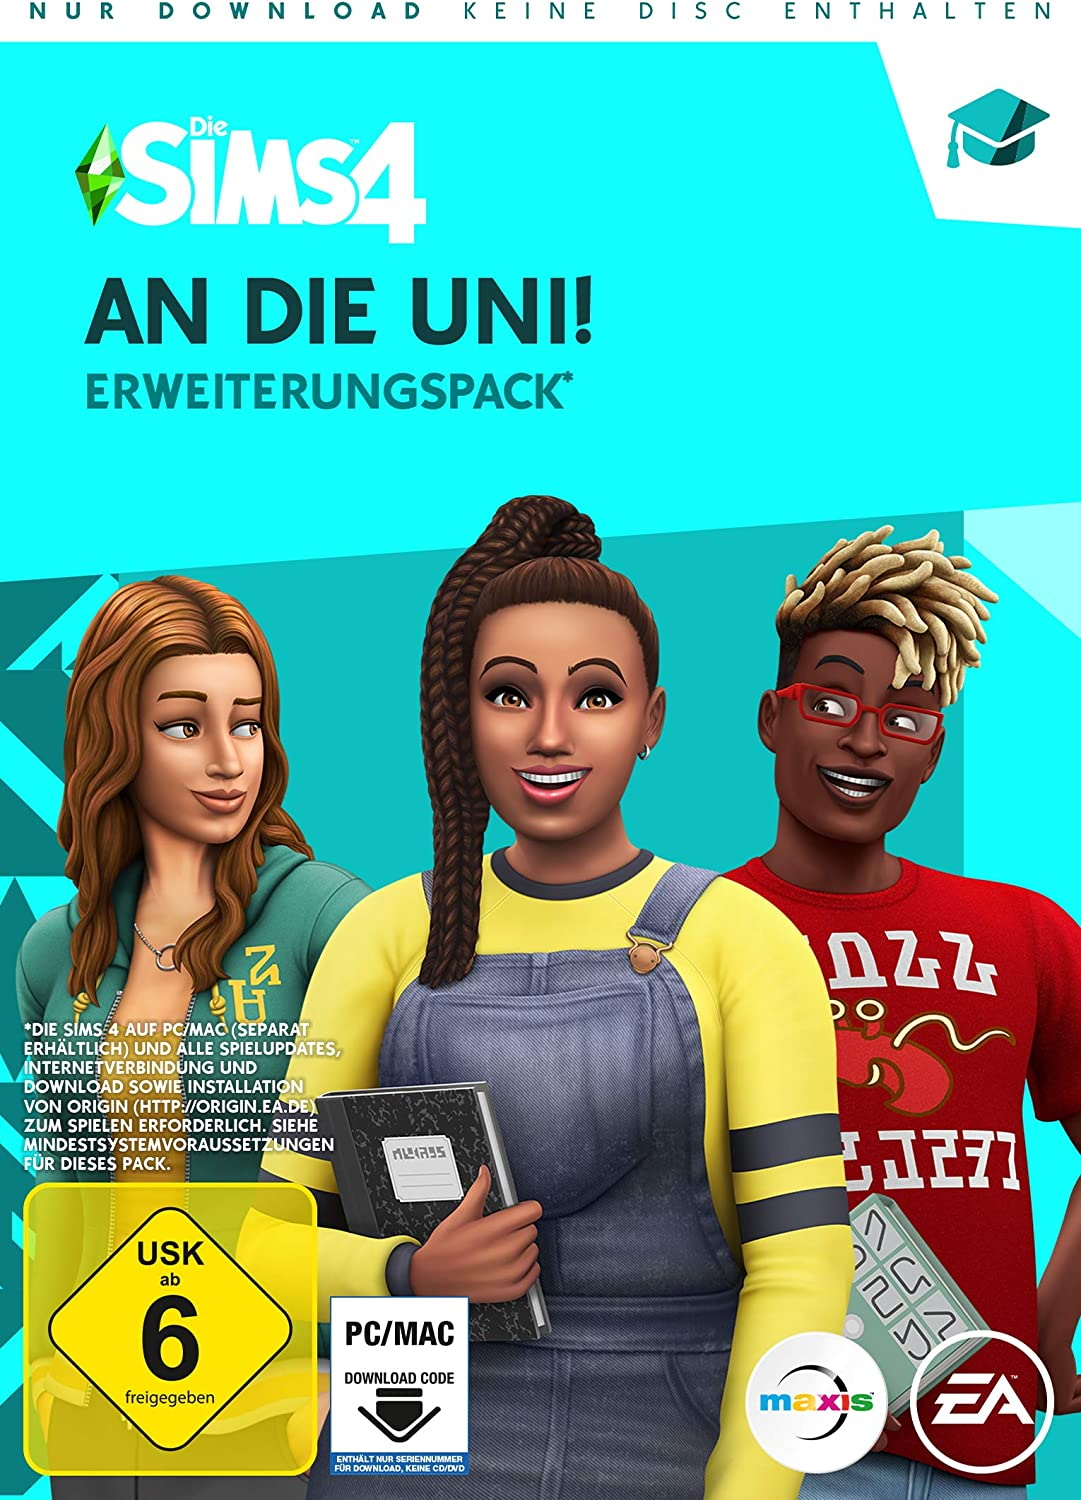 DIE SIMS 4 An die Uni Expansion Pack 8 - PC - [Code in a box ...